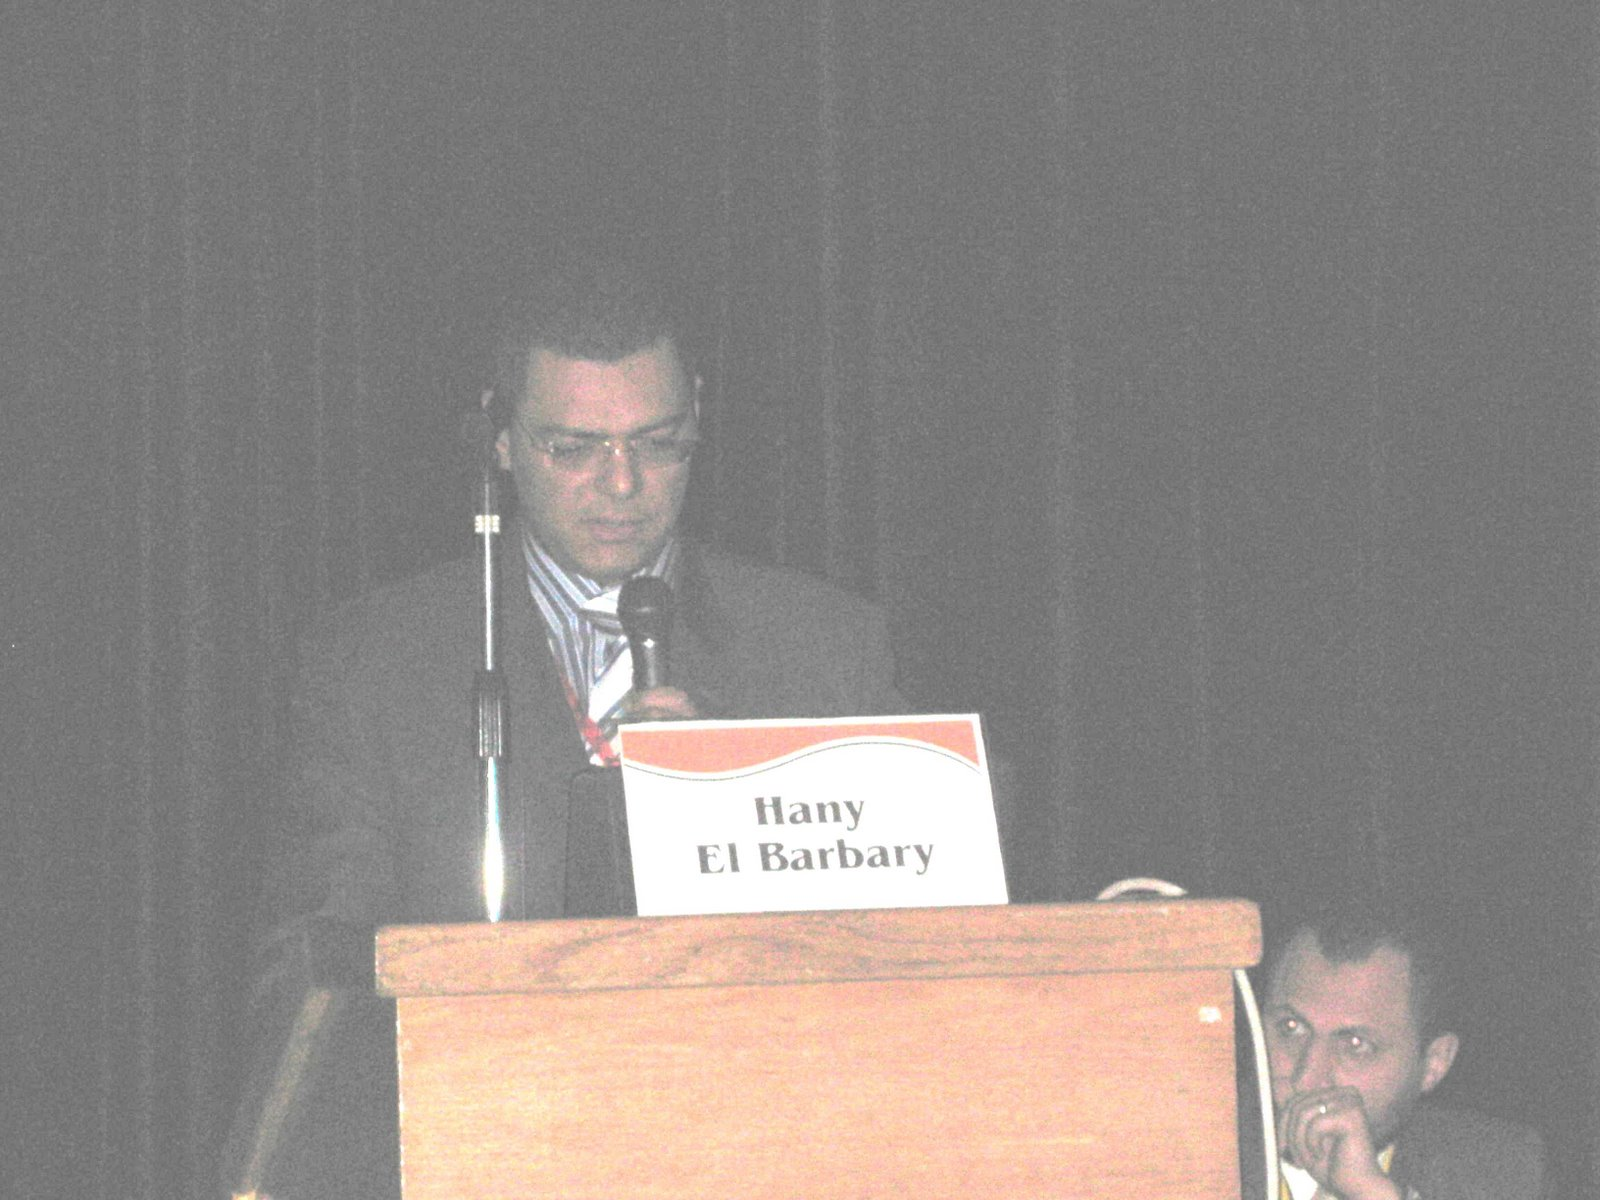 Hany in First Prize Acceptance Speech